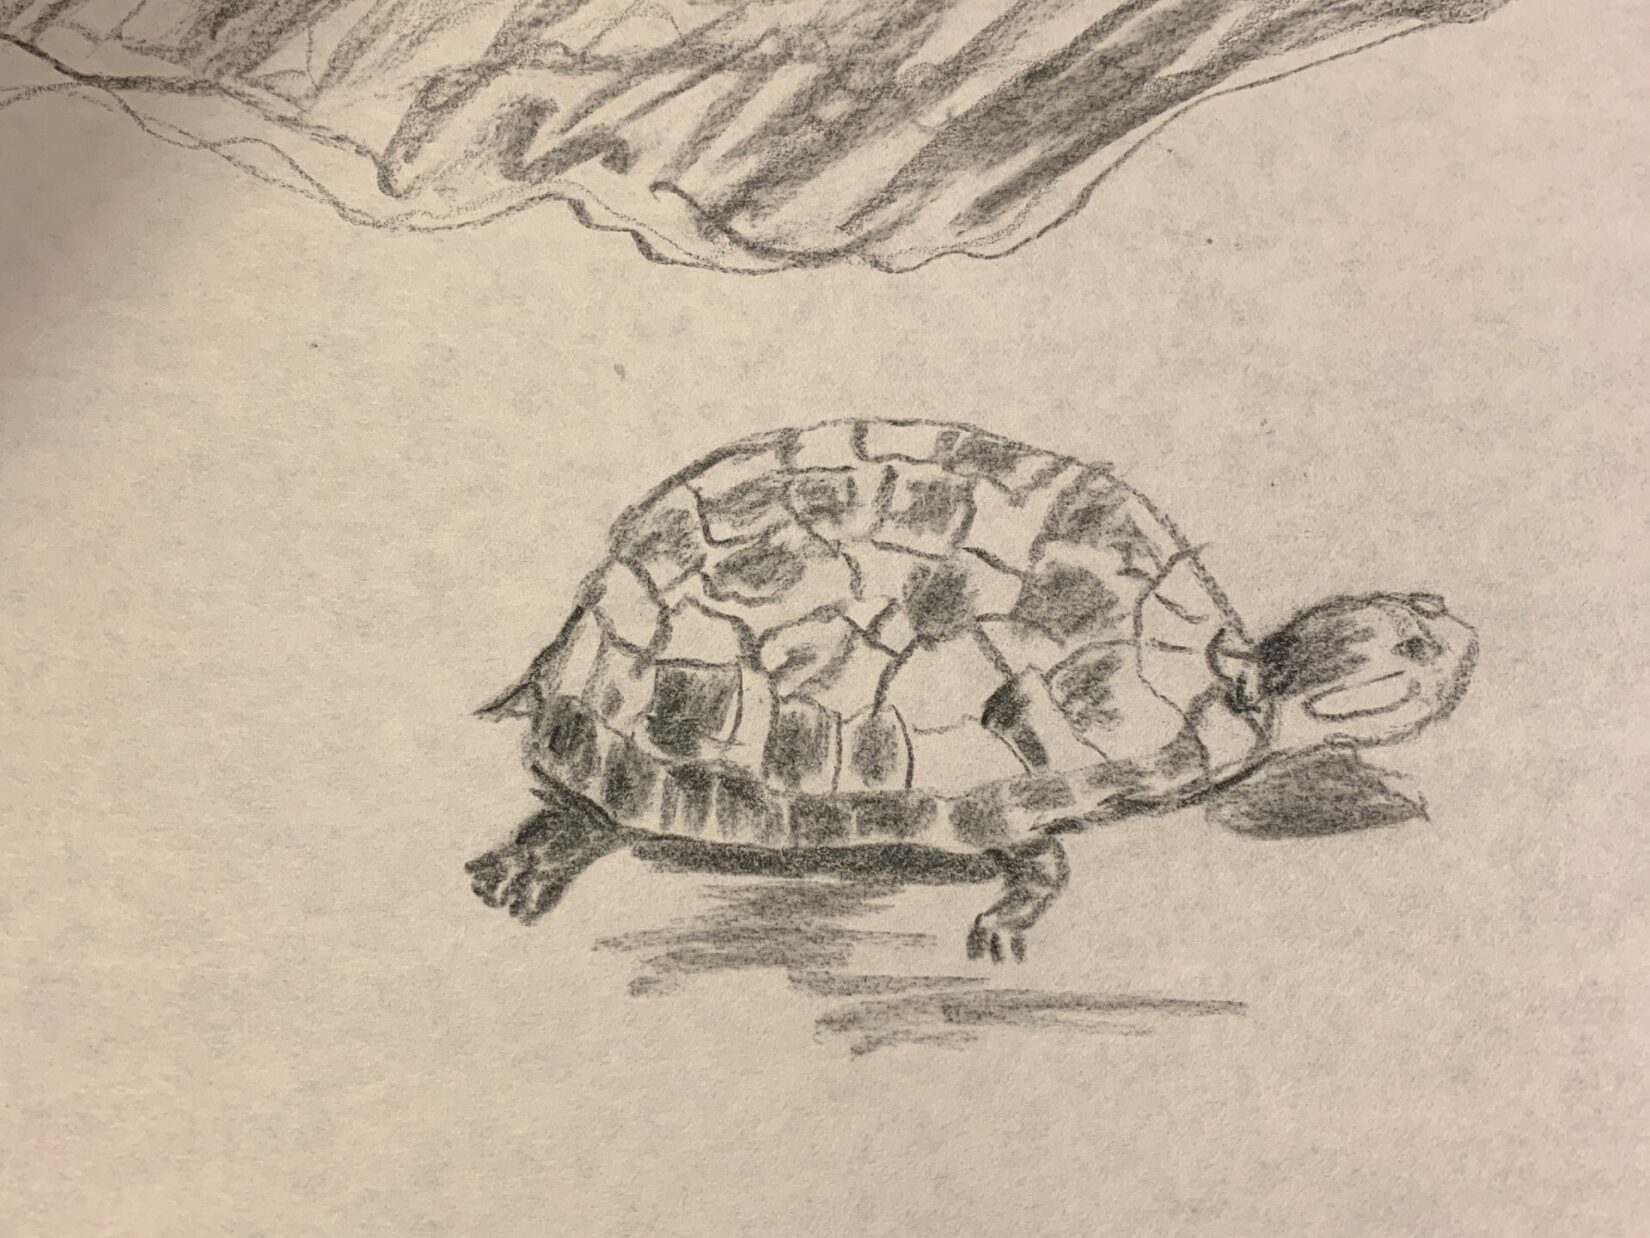 Charcoal rendering of a turle